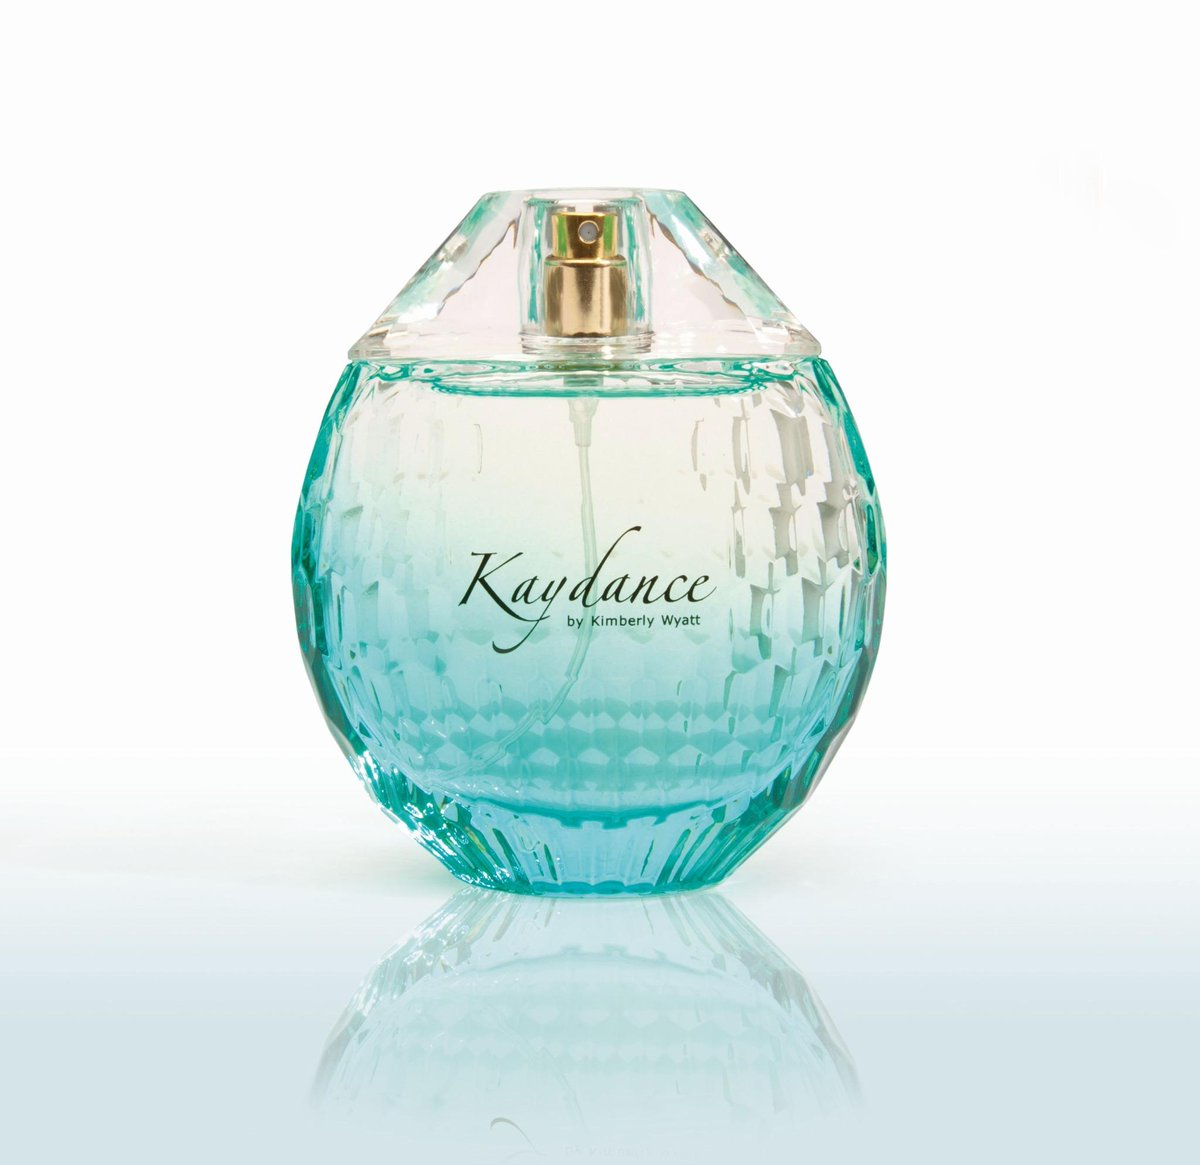 Amid this busy #WinWednesday, just #retweet & #follow to #win a bottle of my debut fragrance #KAYDANCE! #giveaway http://t.co/5C2XjtkL7A